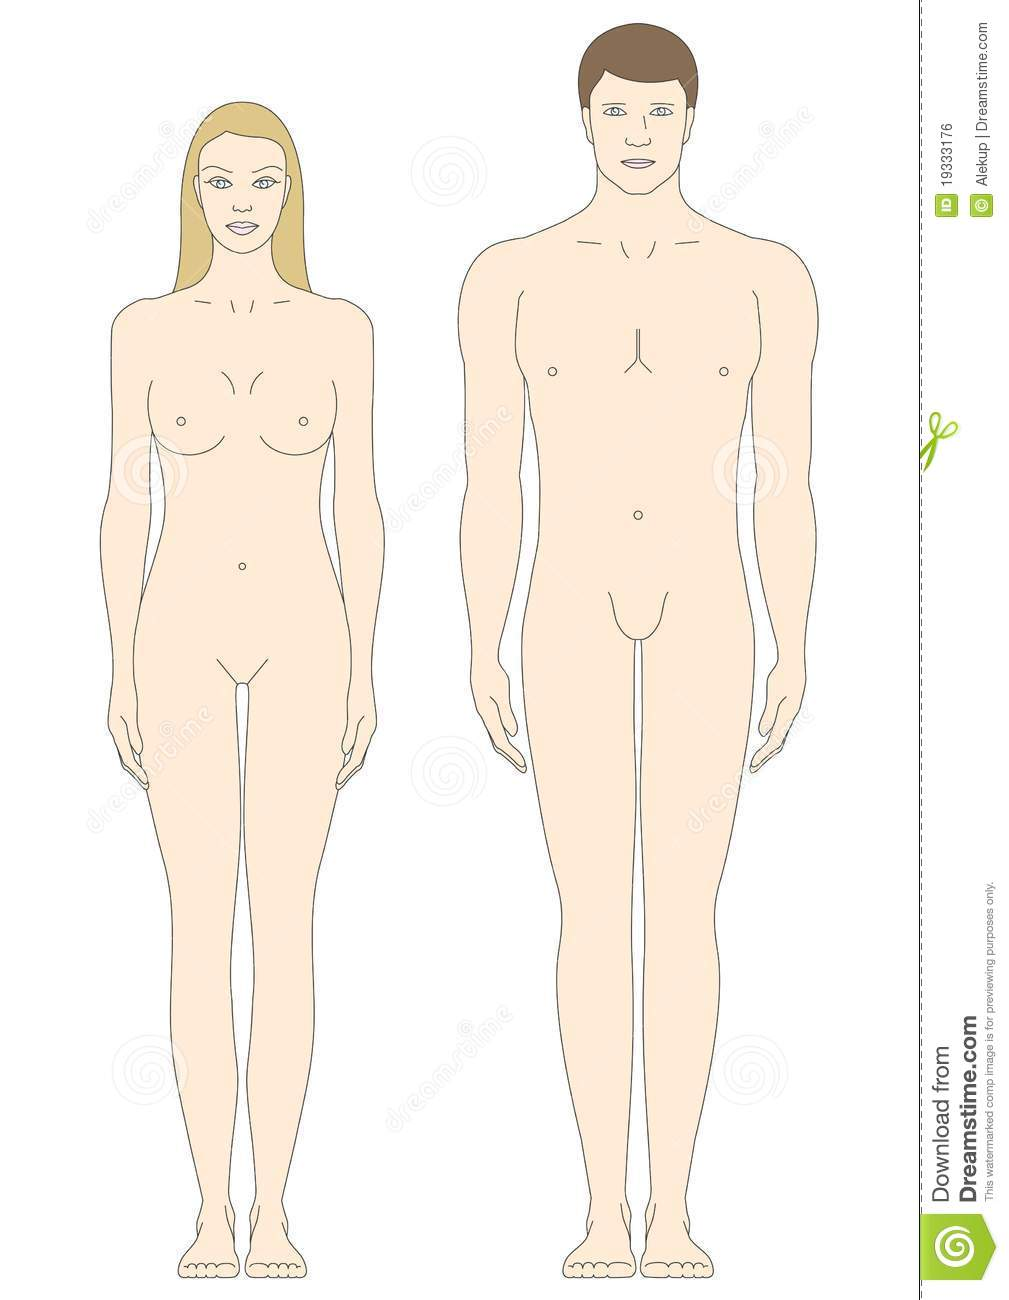 Male And Female Body Templates Stock Vector - Illustration of female ...